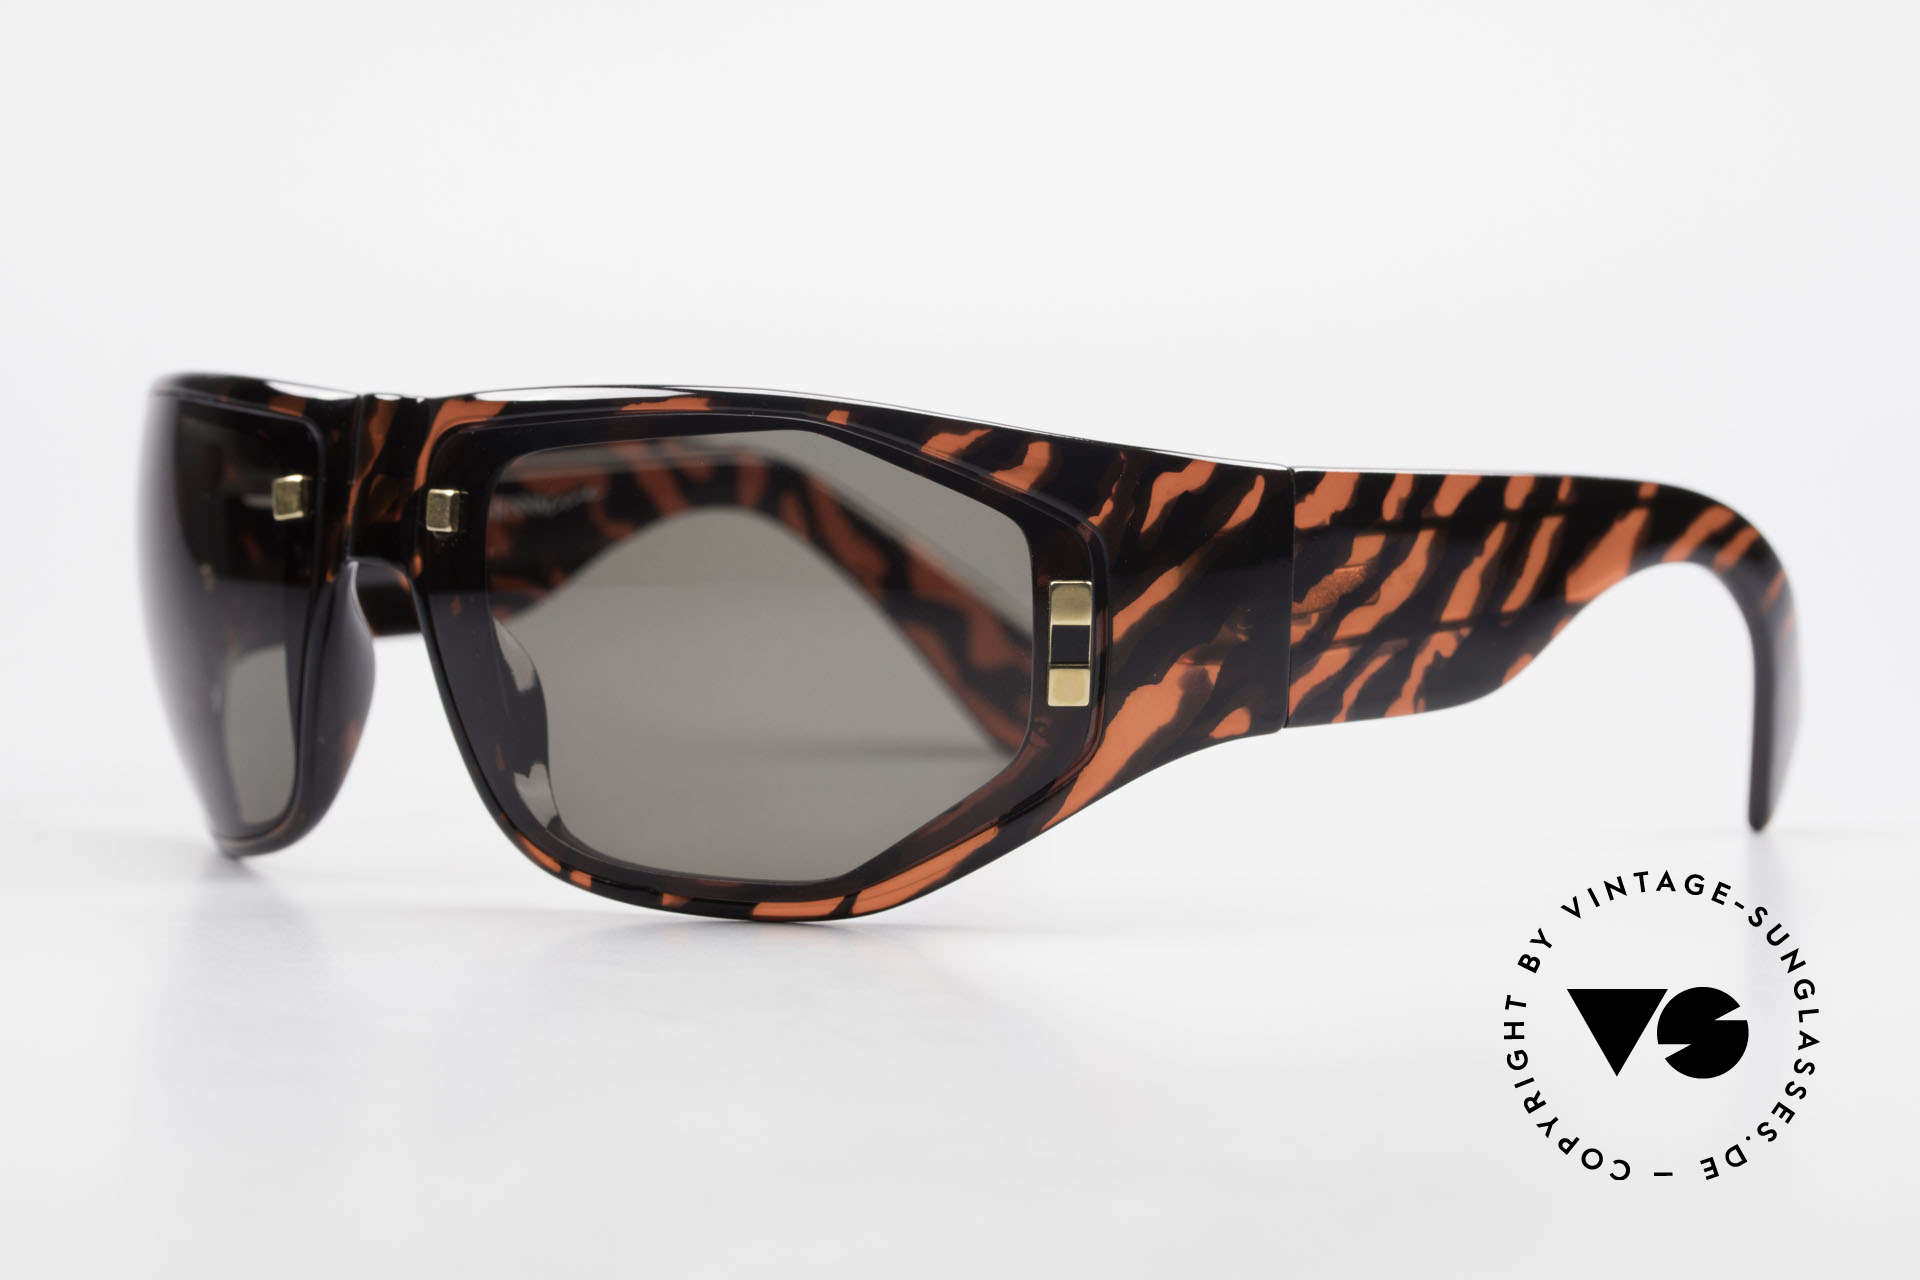 Paloma Picasso 3701 90's Wrap Sunglasses Ladies, just another masterwork from Picasso's art school!, Made for Women